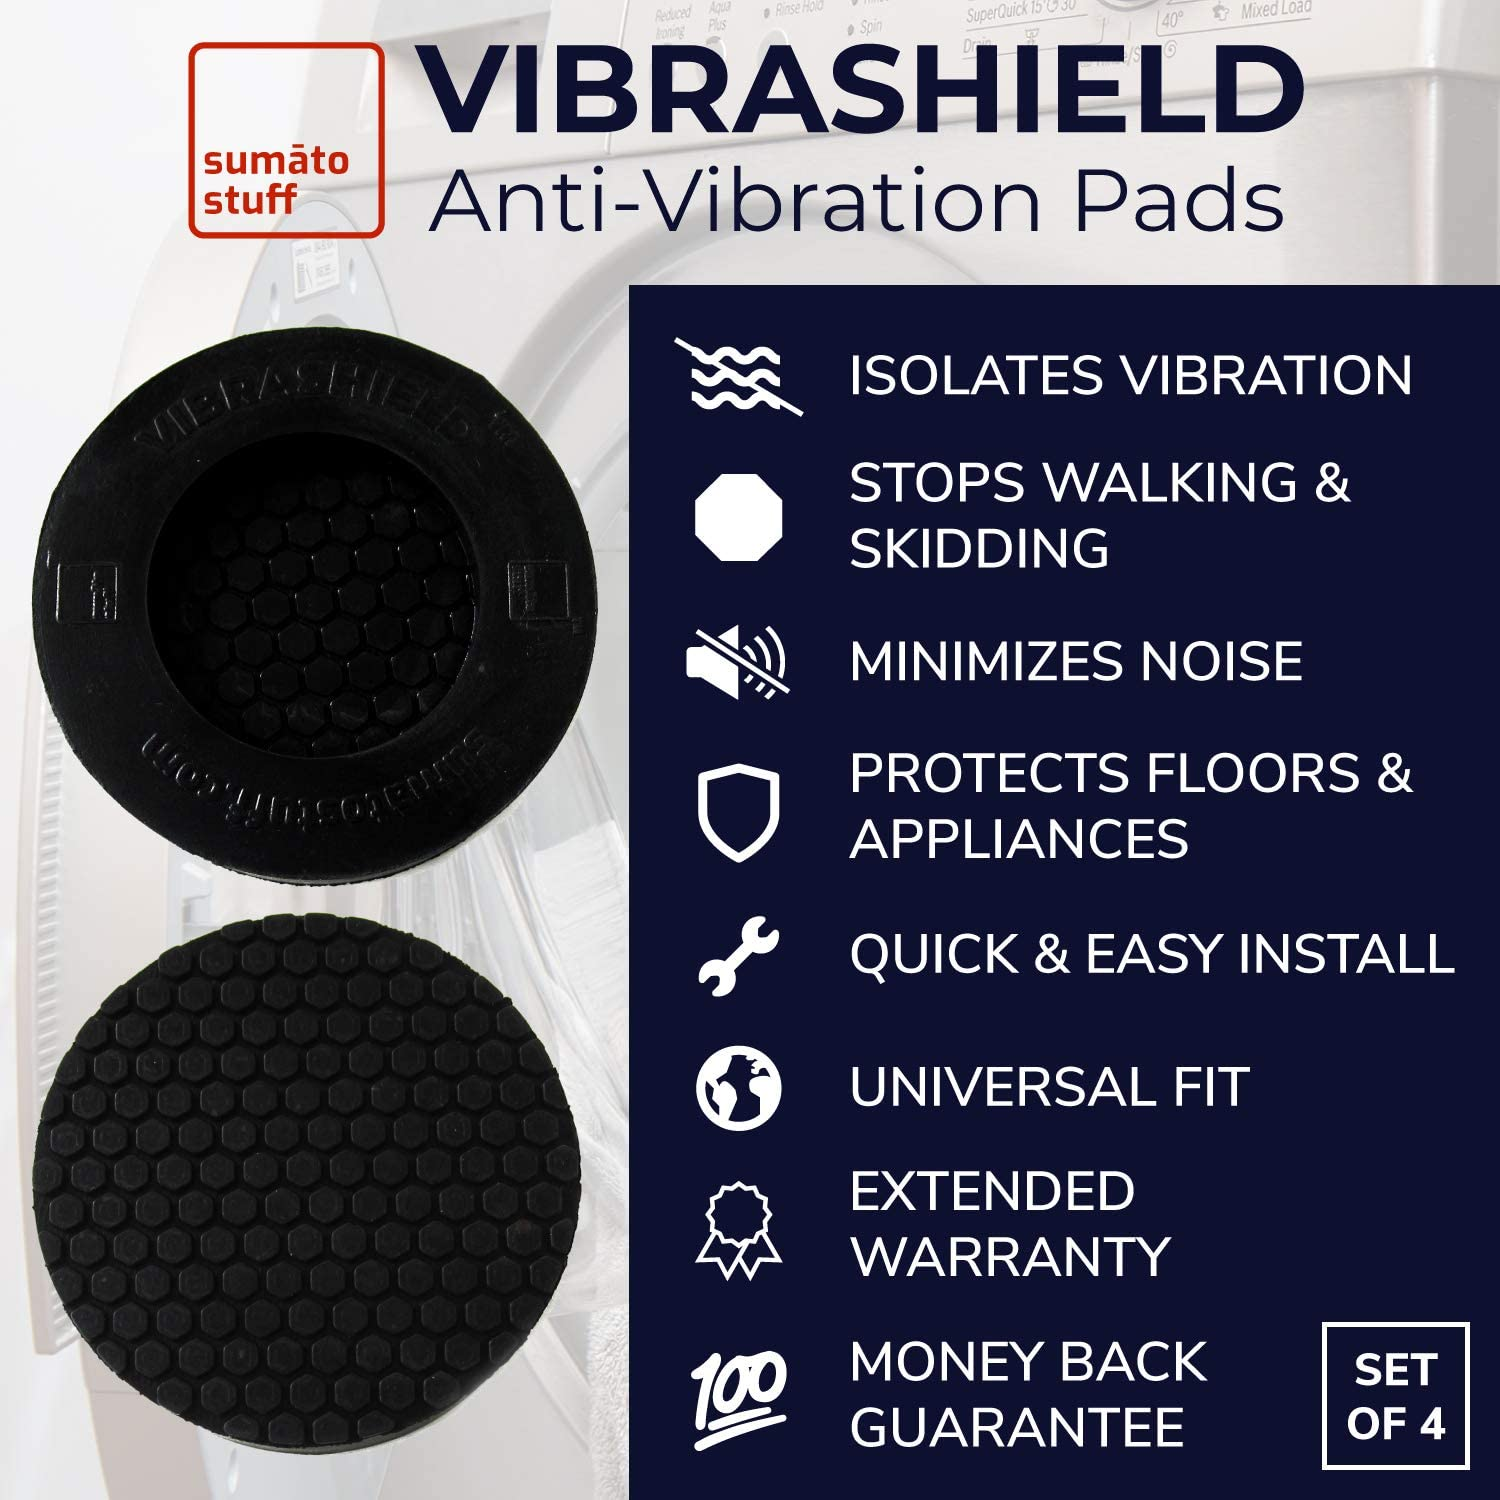 Shock Absorbing Non Slip Grip Feet Pad for Washer Dryer Appliance Prevent Noise Moving Shaking Walking VibraShield Anti Vibration Pads for Washing Machine w//Dual HexaGrip Universal Fit - 4 Pack